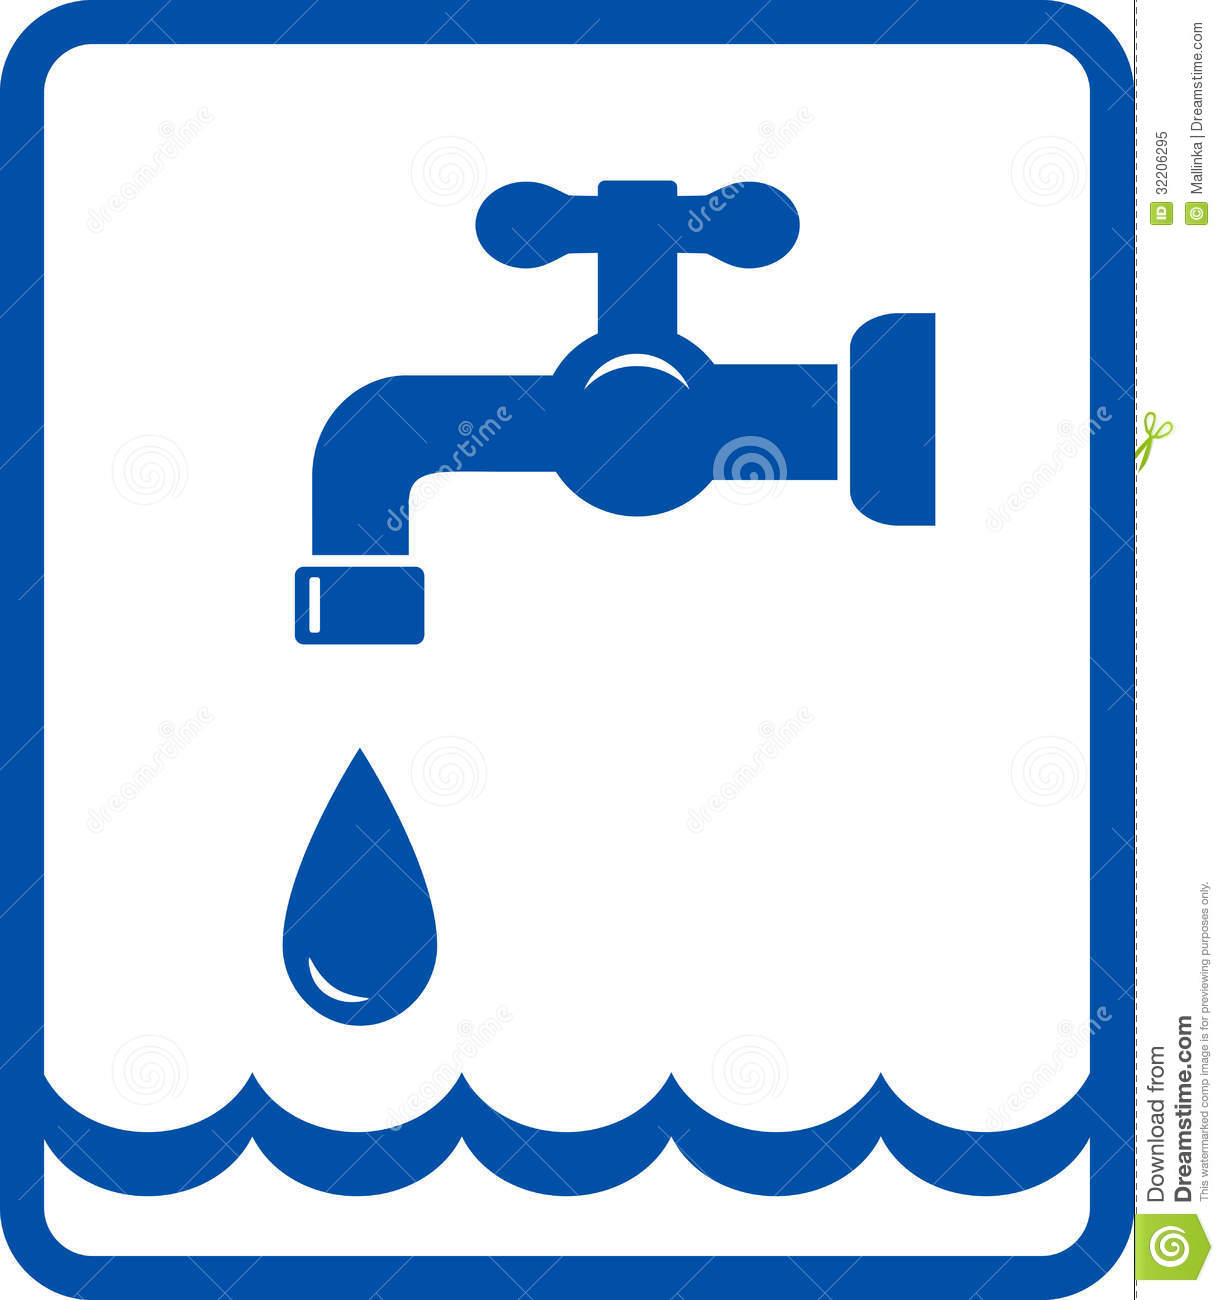 Drinking Water Faucet >> Icon With Tap And Water Wave Stock Vector - Illustration of equipment, faucet: 32206295